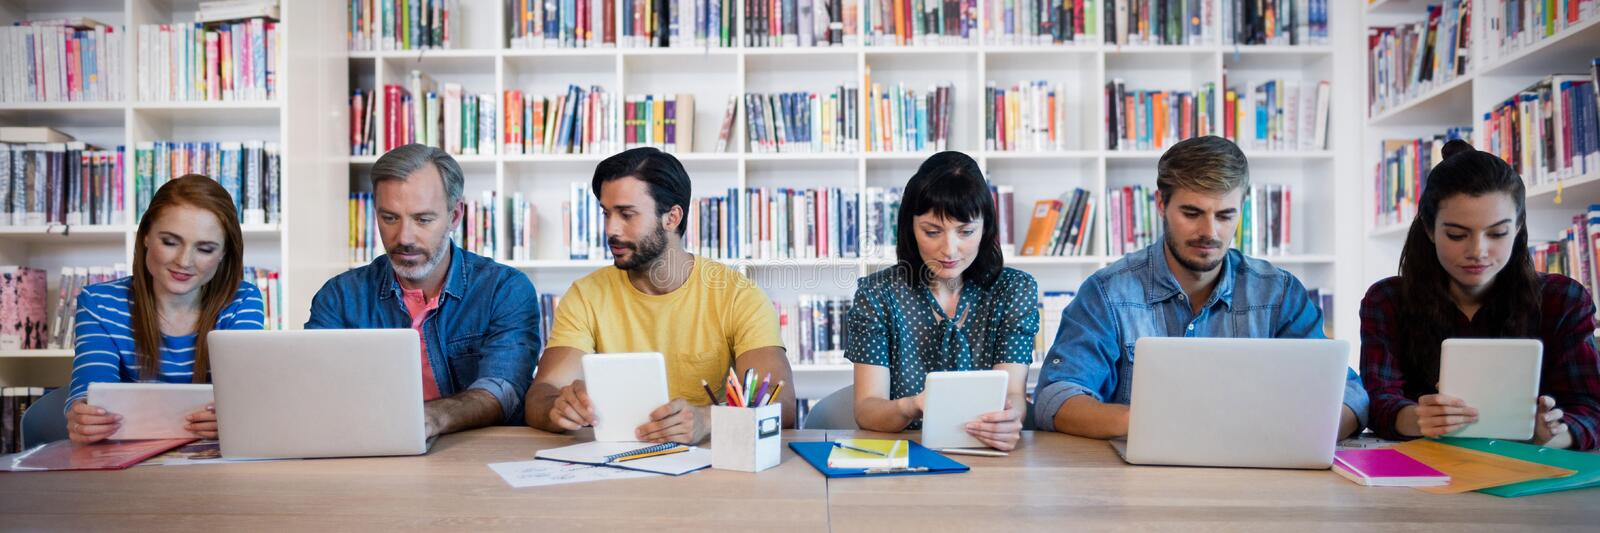 Composite image of business people working at table. Business people working at table against teacher reading books to her students stock photos